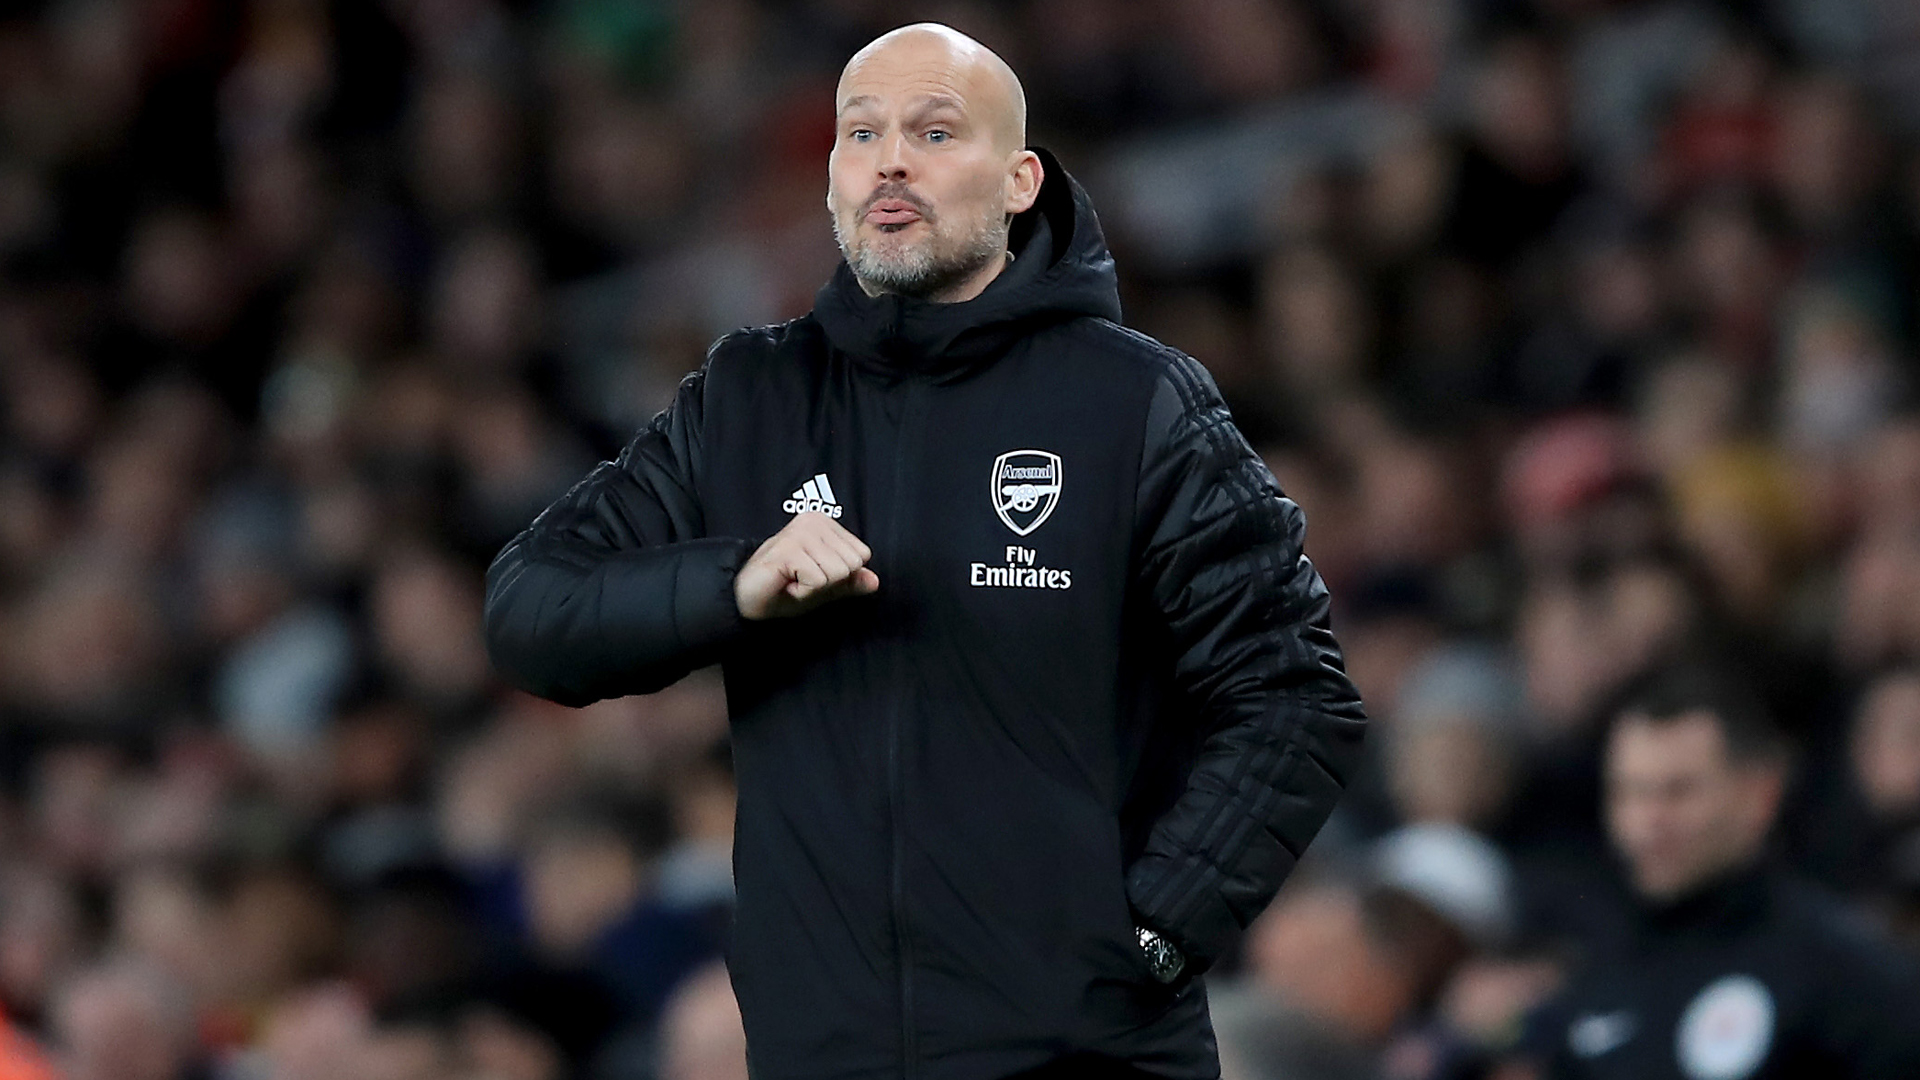 Arsenal just need to 'dig out a win', says Ljungberg